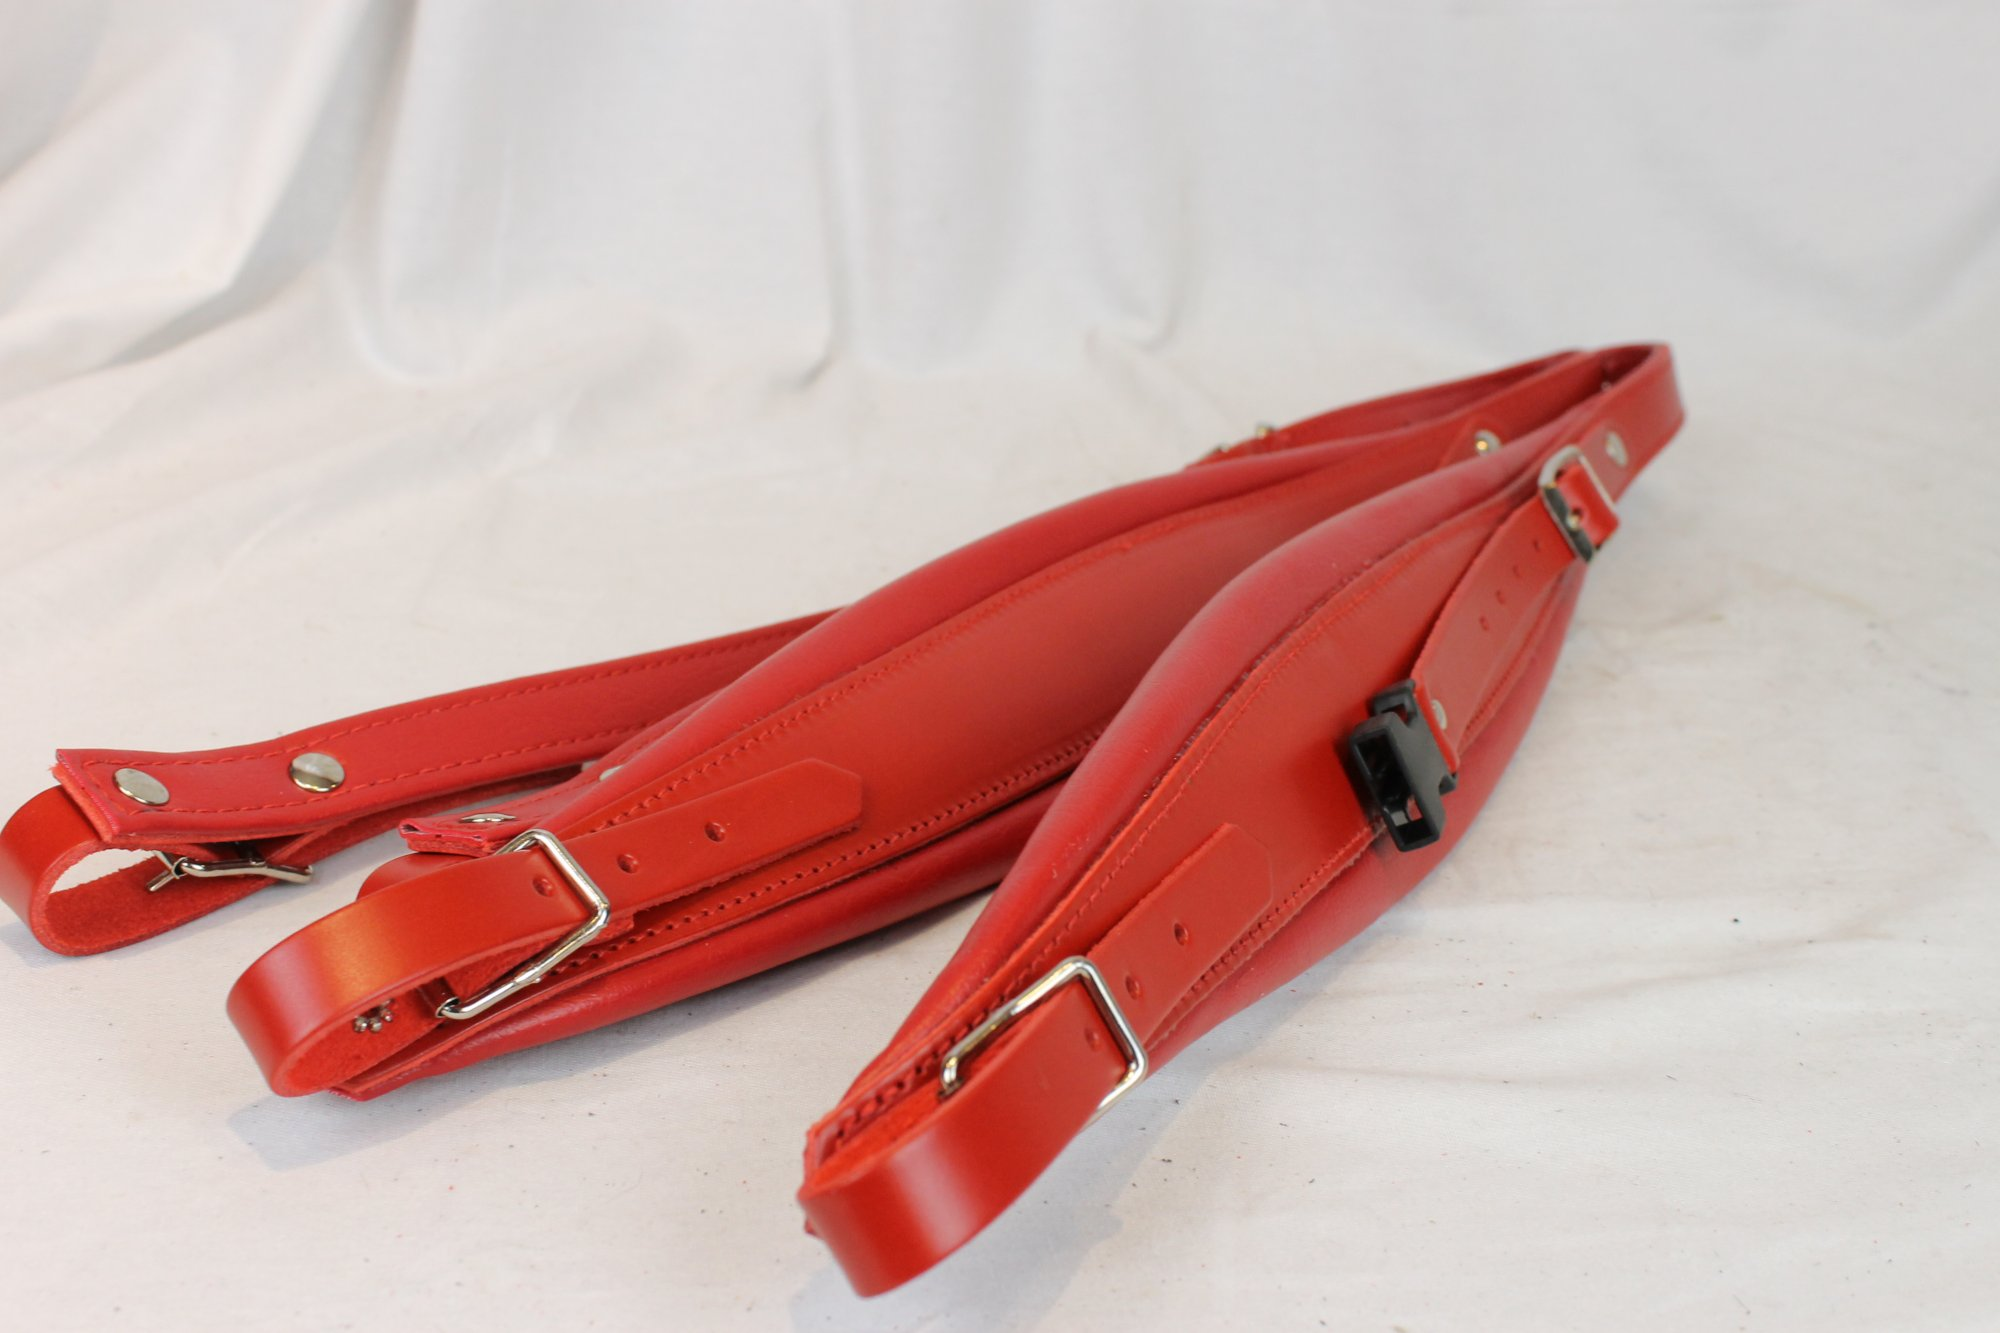 New Red Leather Fuselli Accordion Shoulder Straps With Back Straps Width (9cm / 3.5in) Length (105~123cm / 41.3~48.4in)